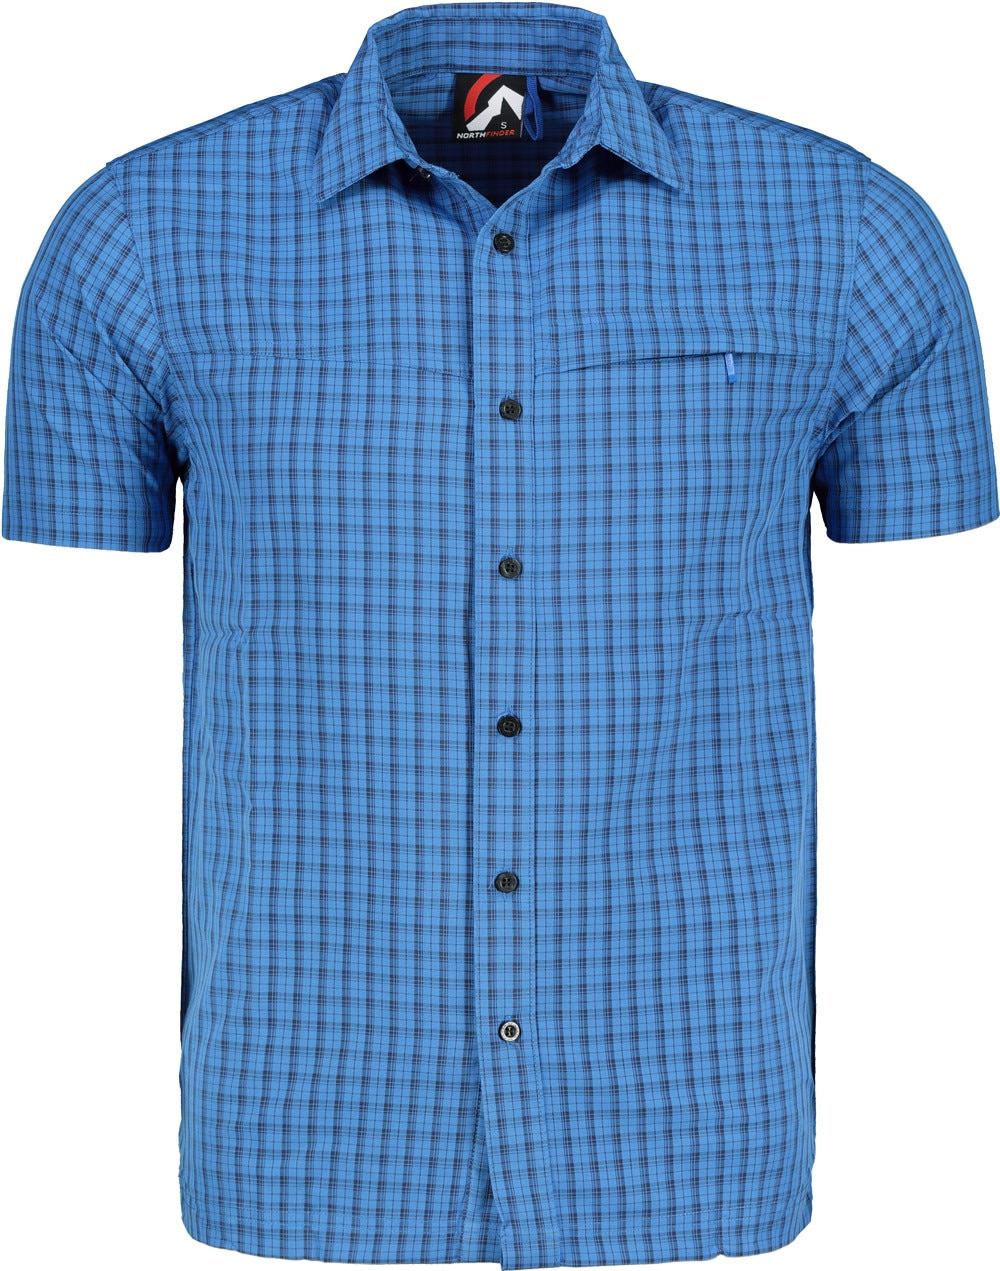 Men's shirt NORTHFINDER ROBERTSON